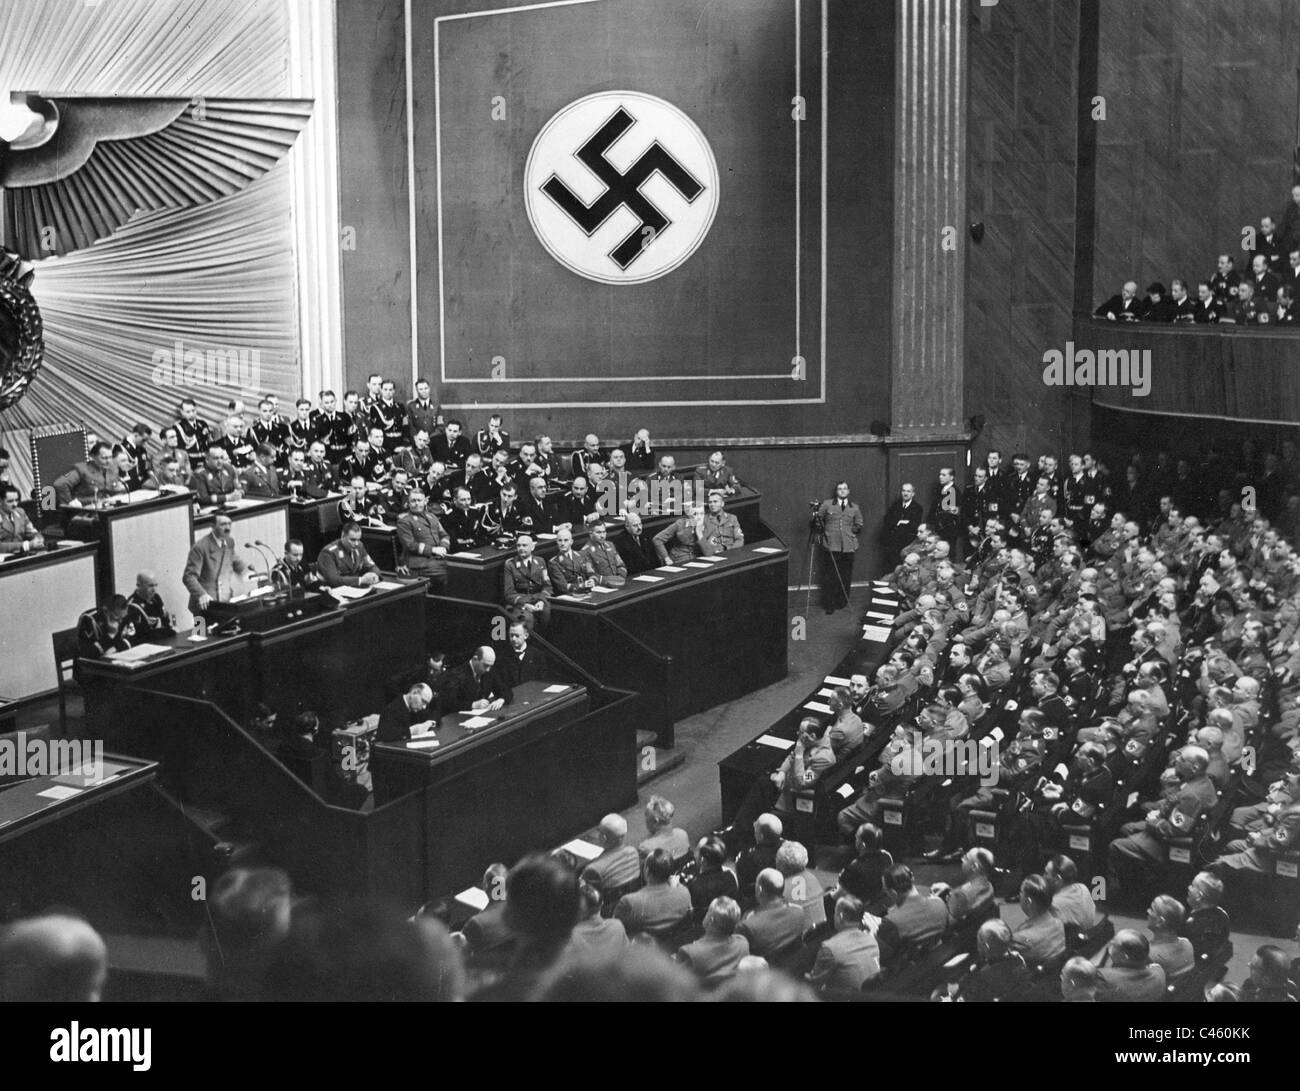 Adolf Hitler speaks to the Reichstag, 1939 - Stock Image